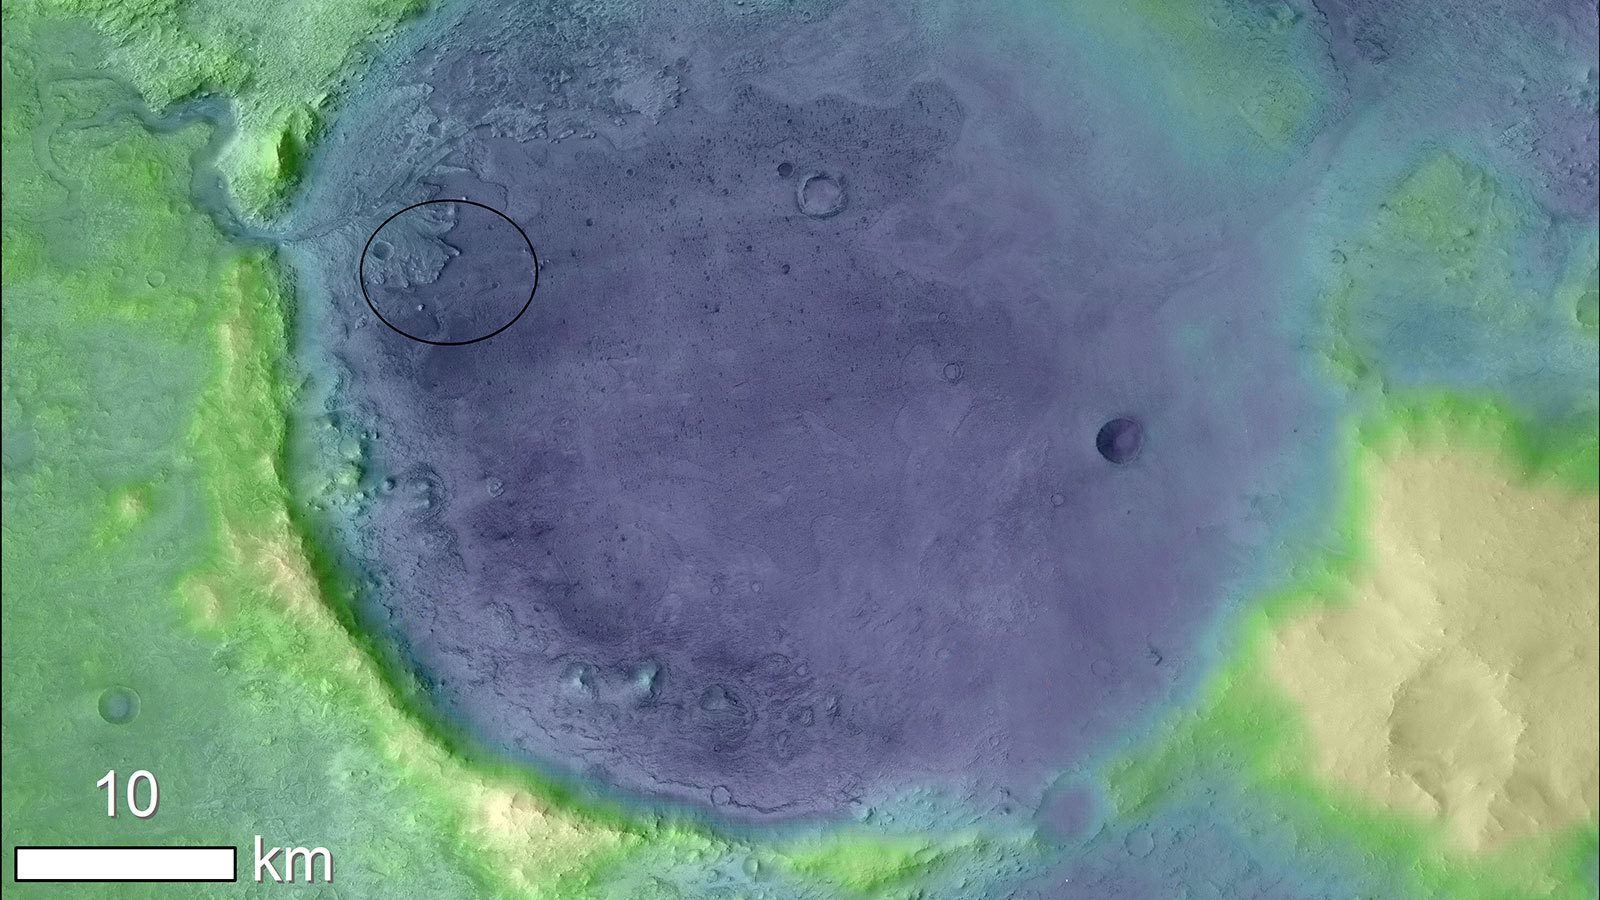 Lighter colors represent higher elevation in this image of Jezero Crater on Mars, the landing site for NASA's Mars 2020 mission.